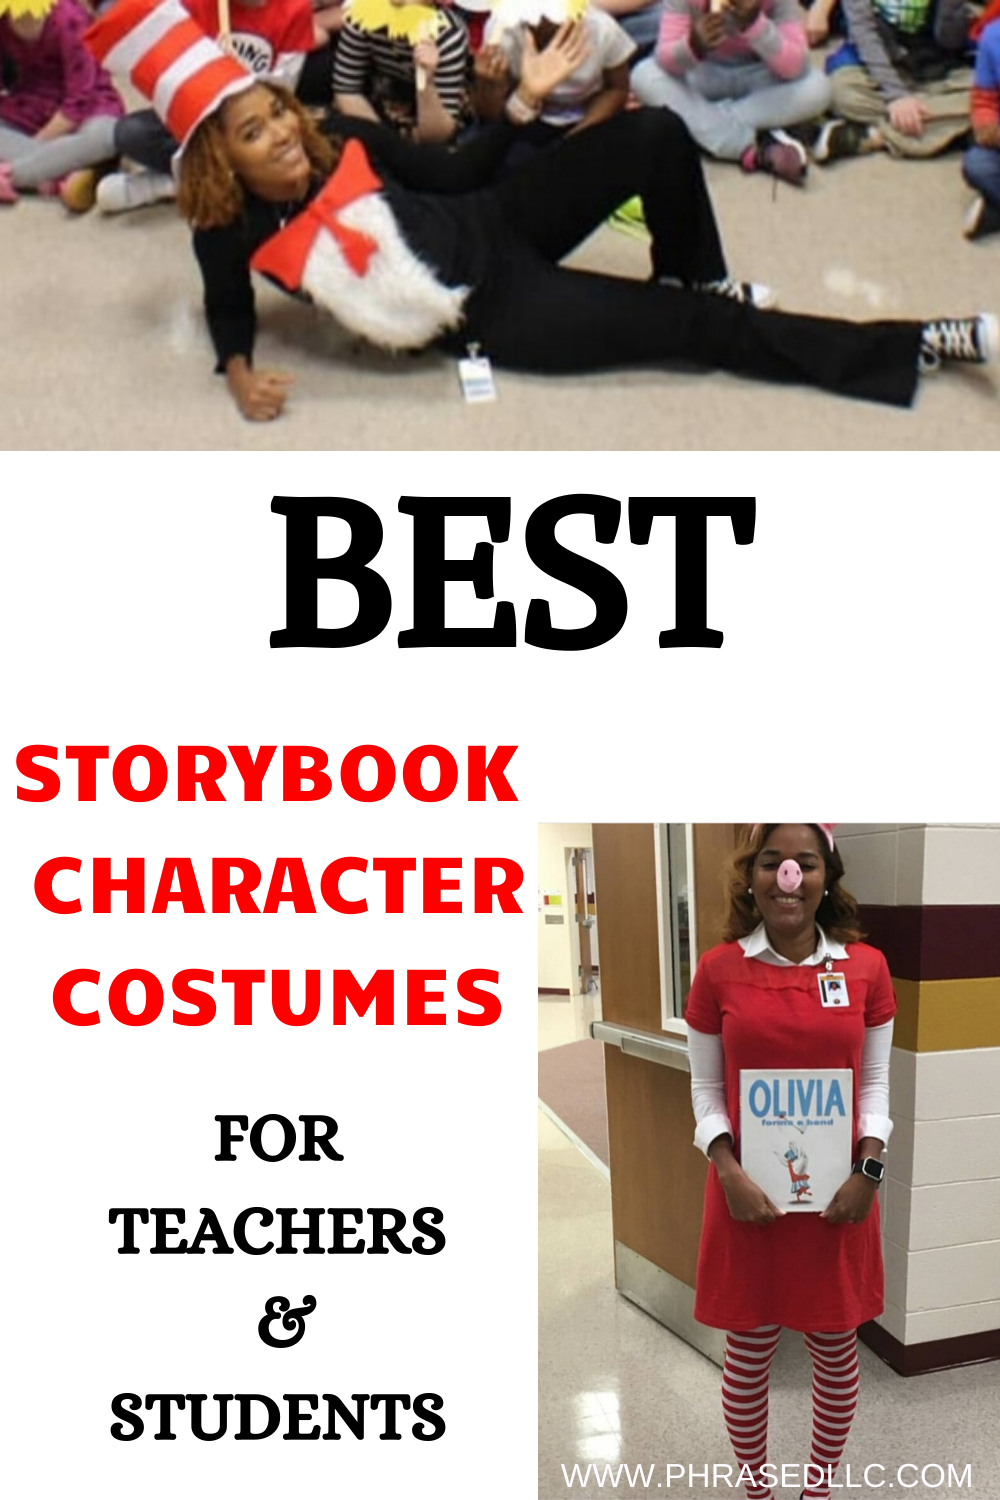 DIY book character costumes for teachers of storybook characters that are popular characters and would make excellent teacher book character costumes for teachers, boys and girls.